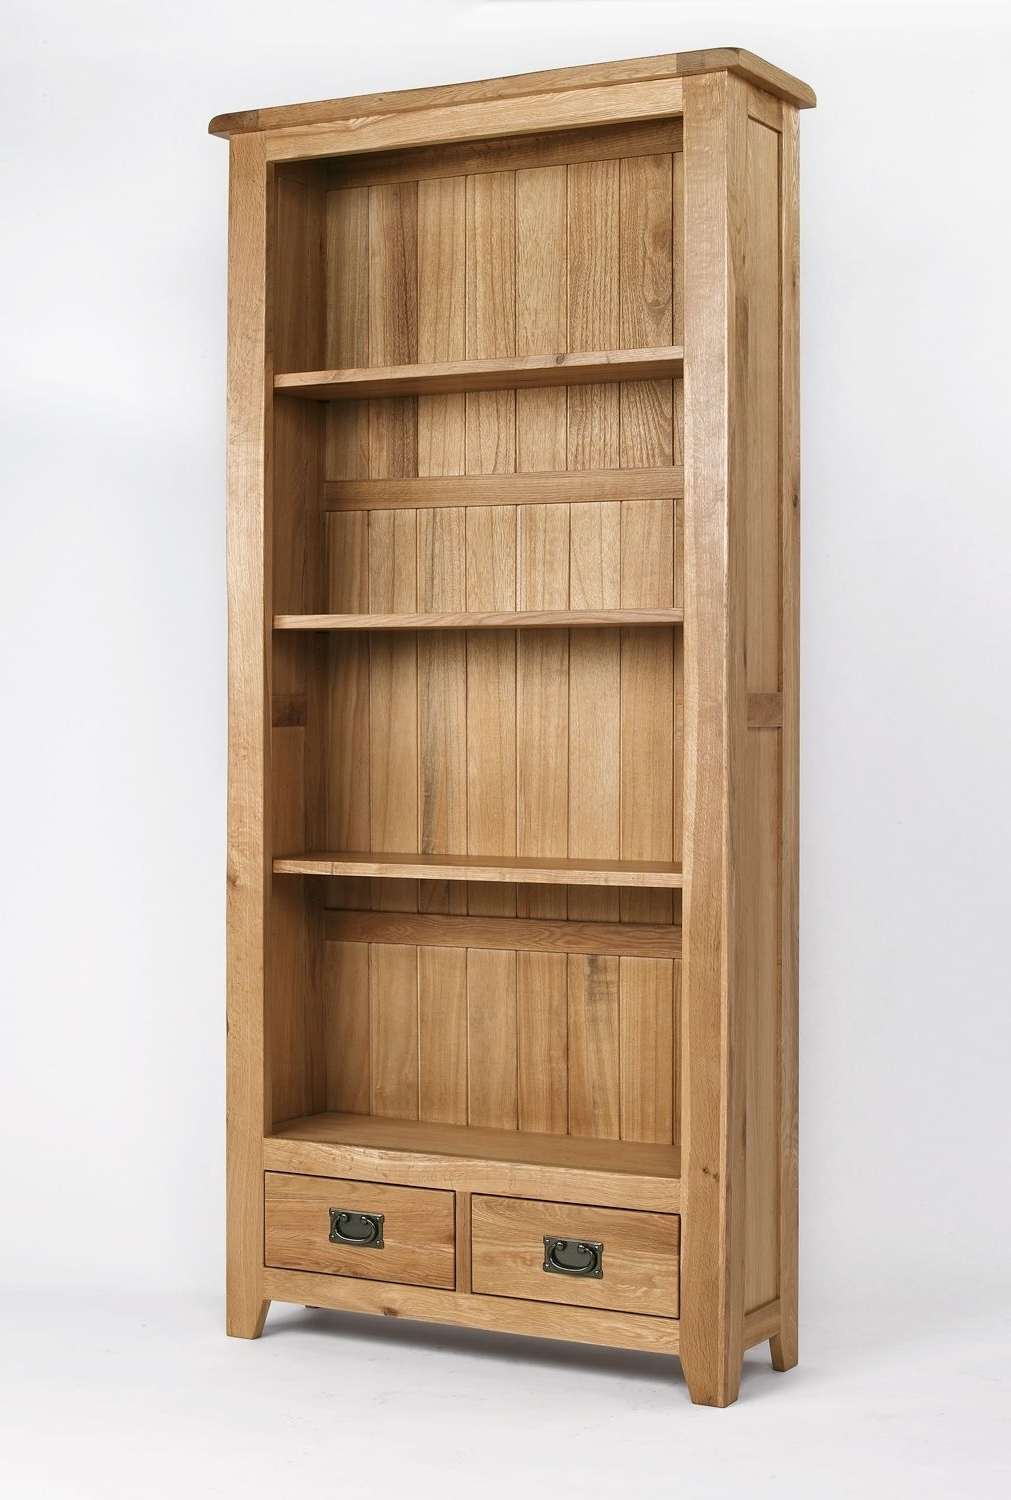 Living Room Ideas Regarding Recent Large Solid Wood Bookcases (View 9 of 15)